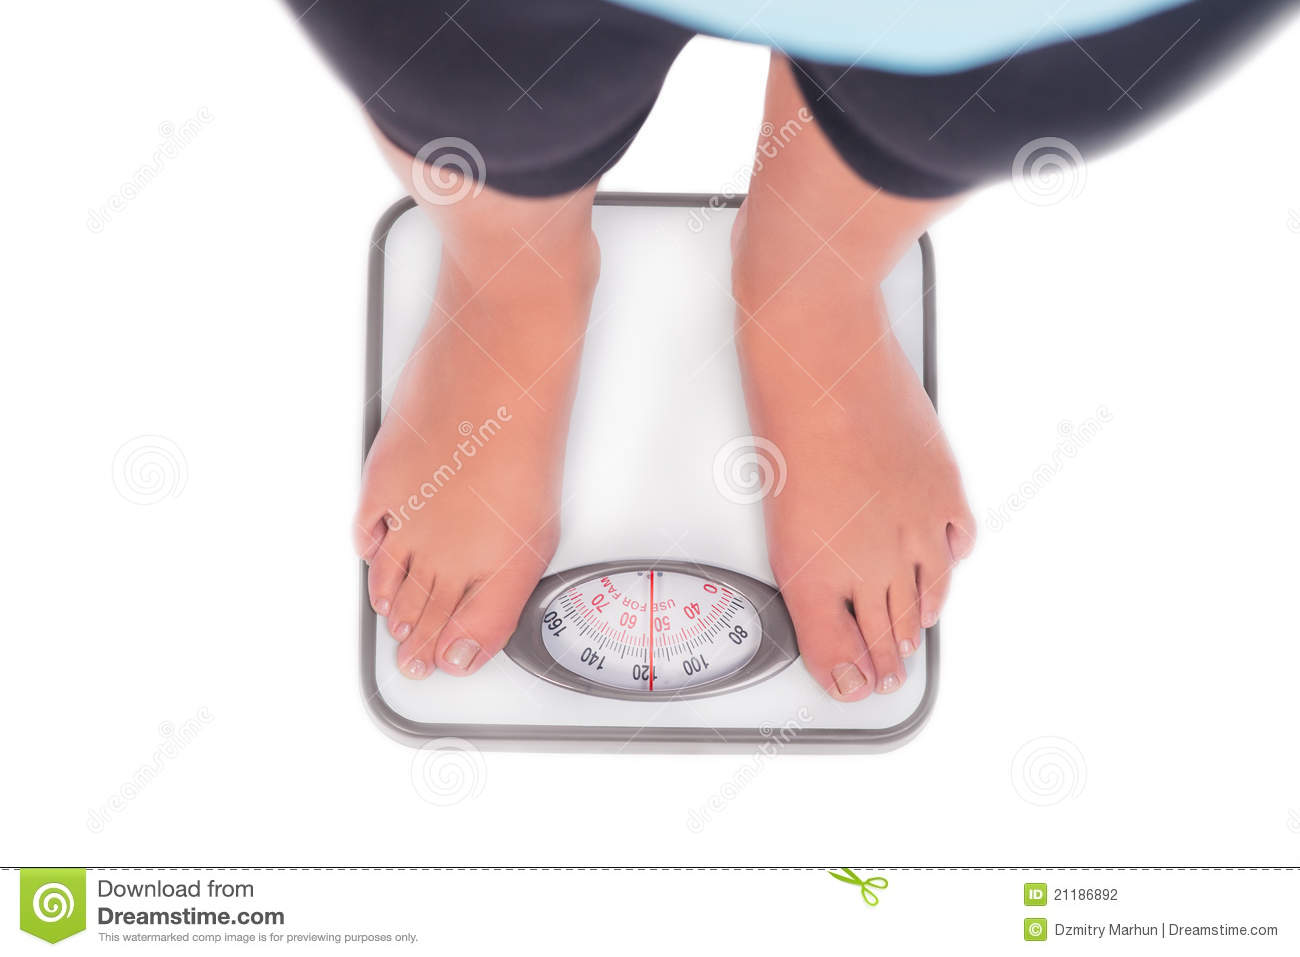 Weight scale and woman s feet on it